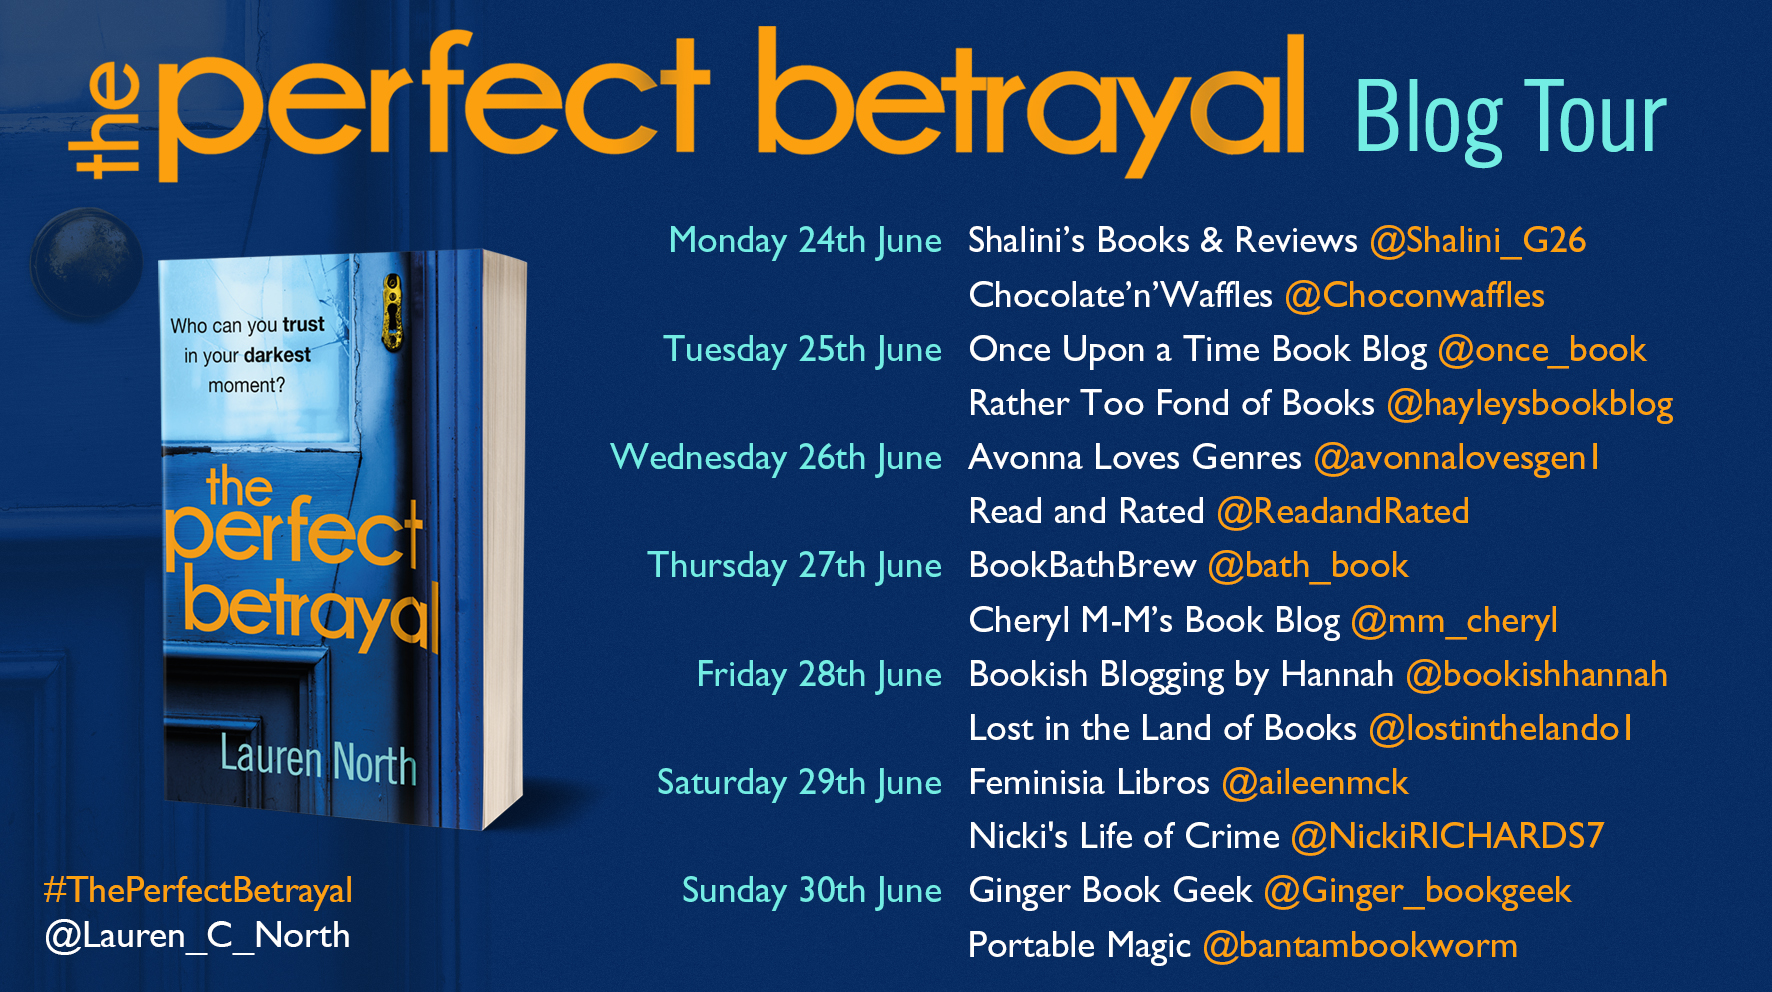 Perfect Betrayal Blog Tour poster for PB